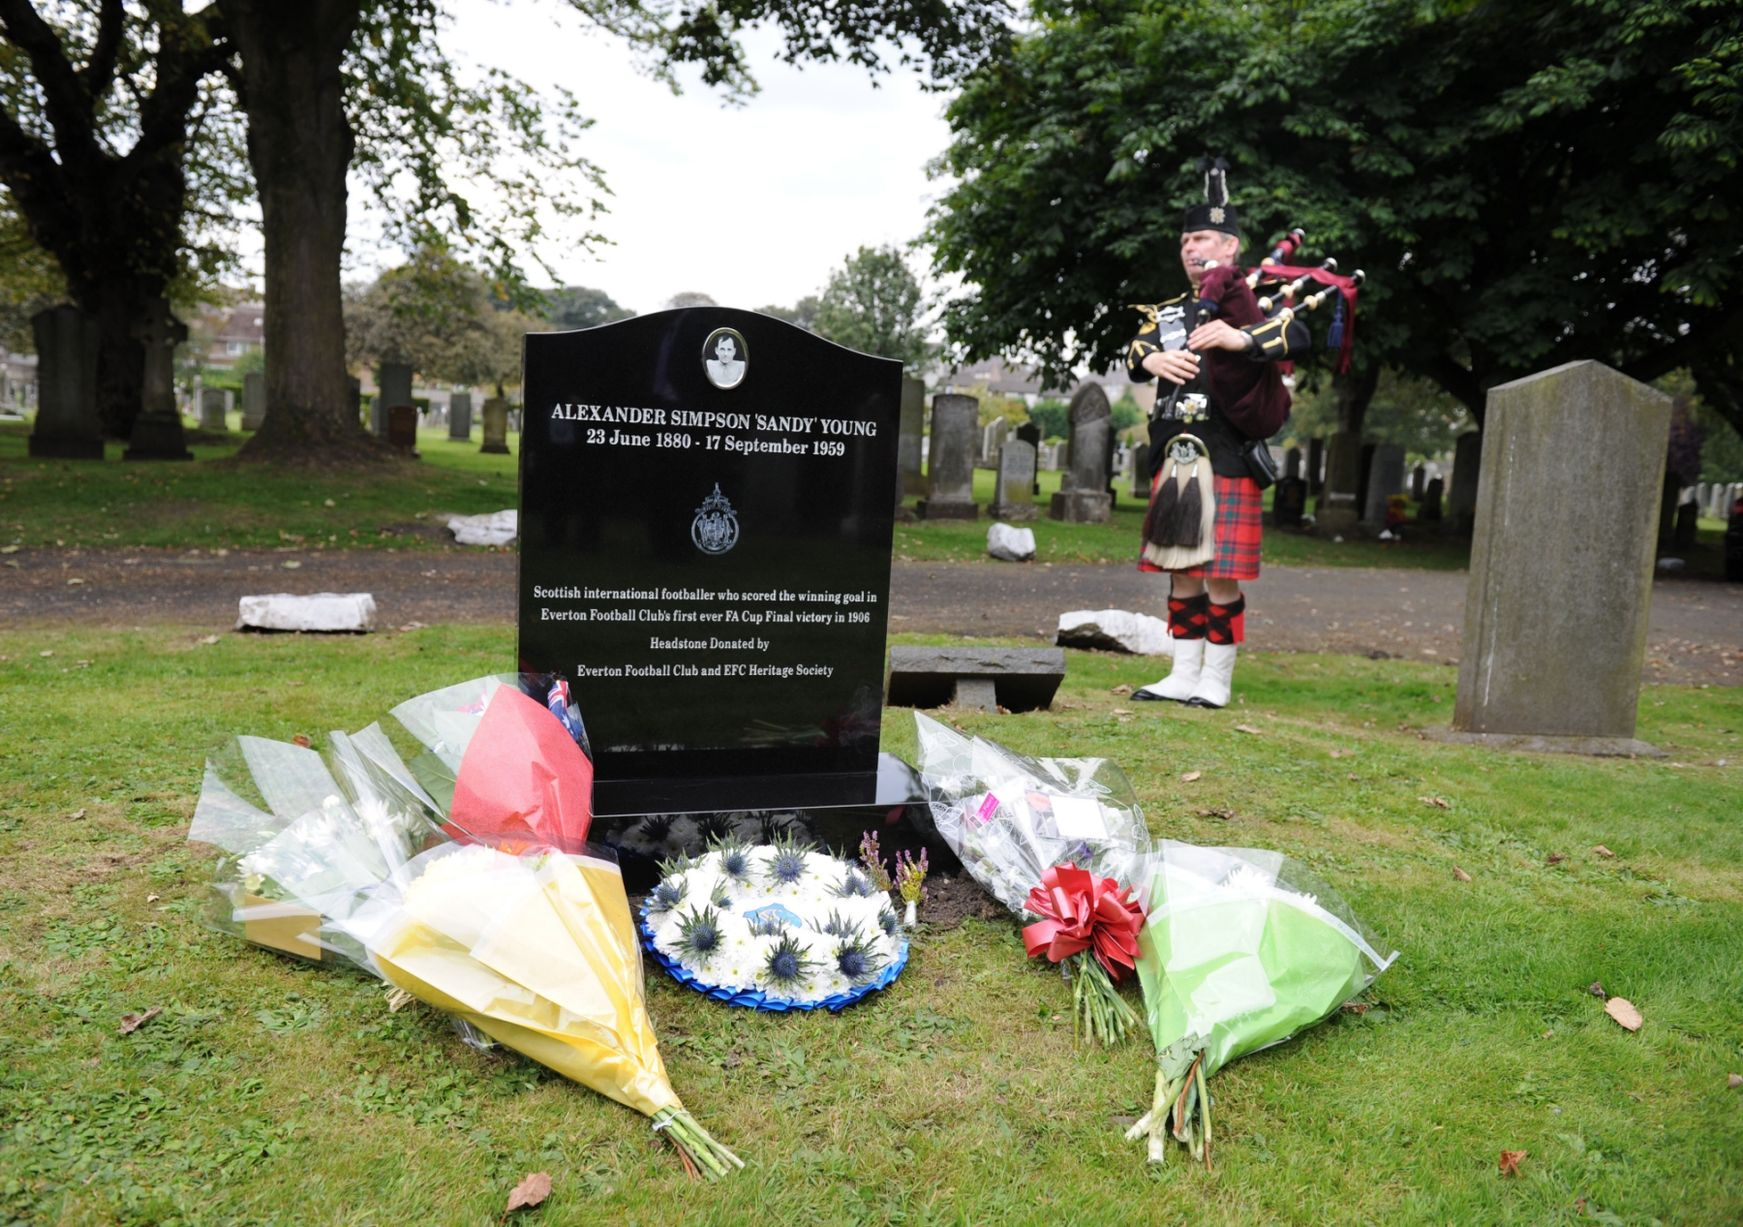 The EFC Heritage Society and Everton FC, pay tribute to Alex Young